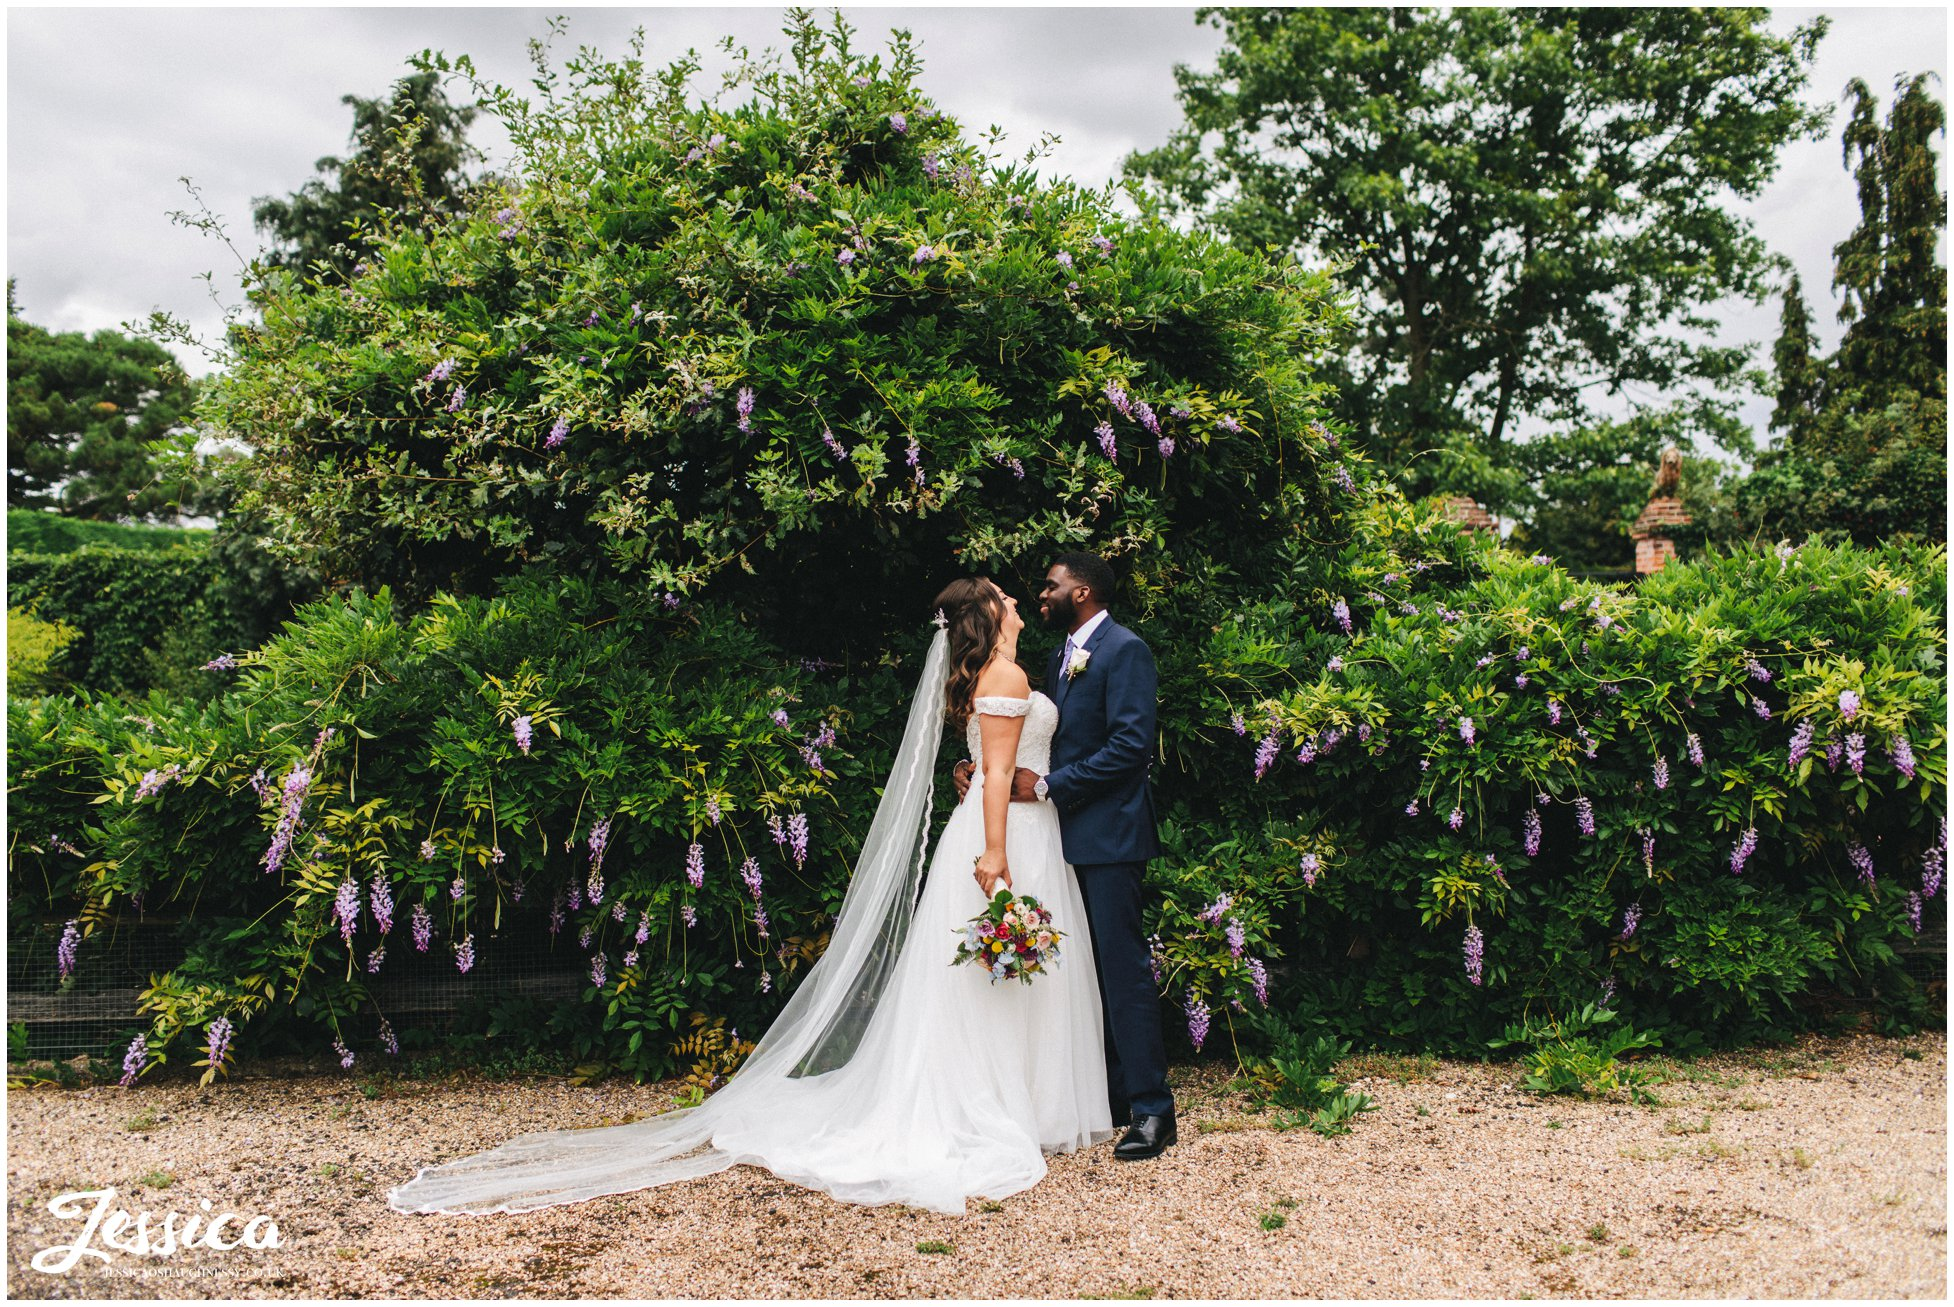 the couple kiss in front of wisteria